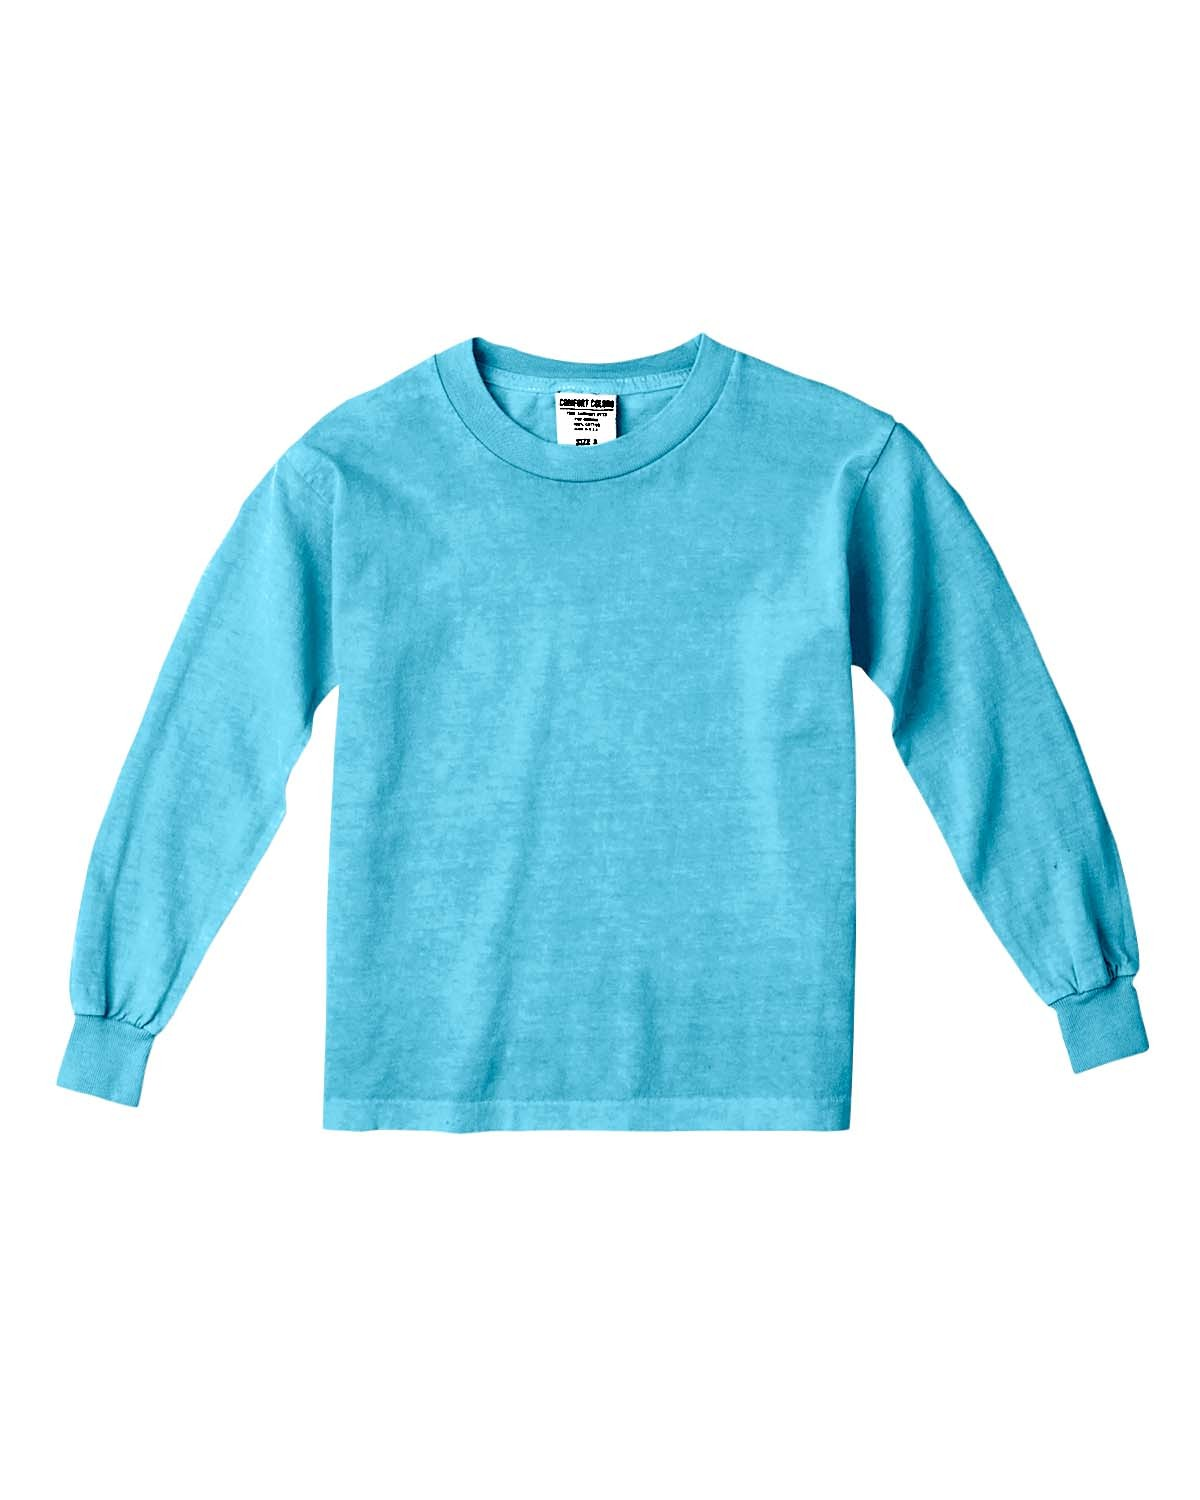 C3483 Comfort Colors Drop Ship LAGOON BLUE